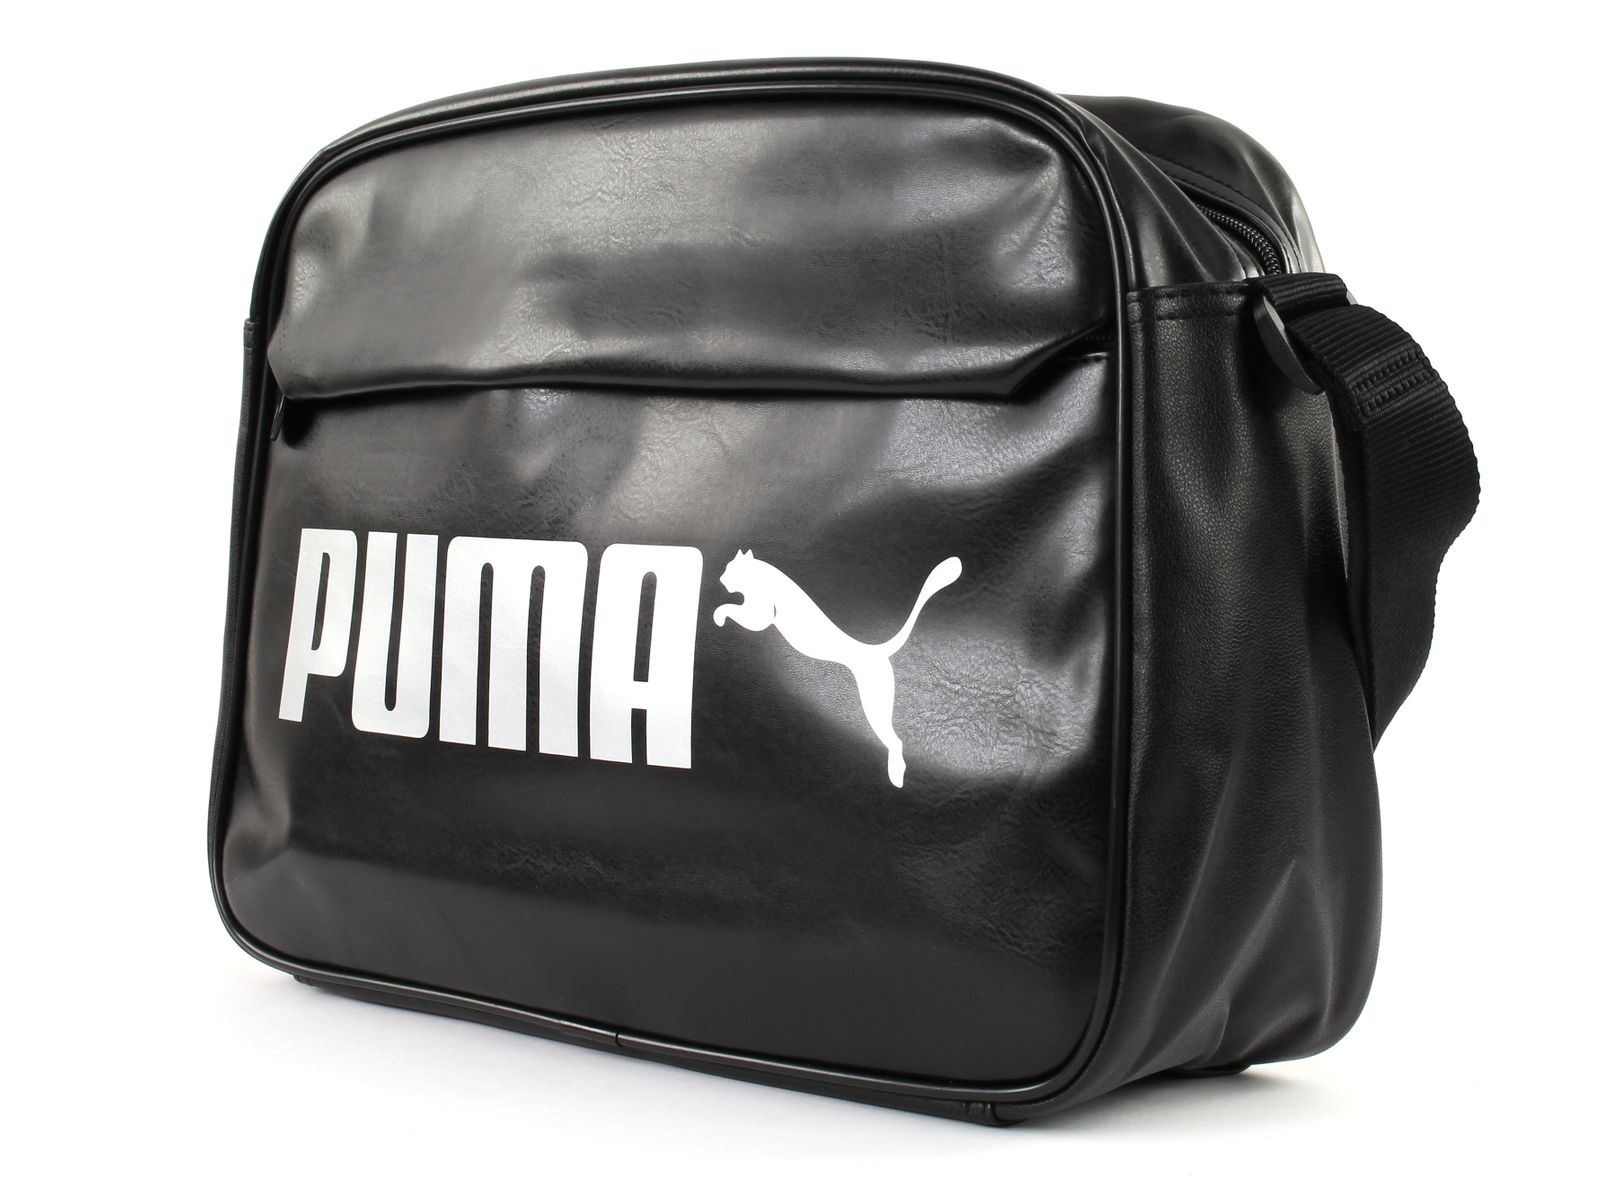 ... To ClosePUMA Campus Reporter Puma Black   25 539455a8e61e8